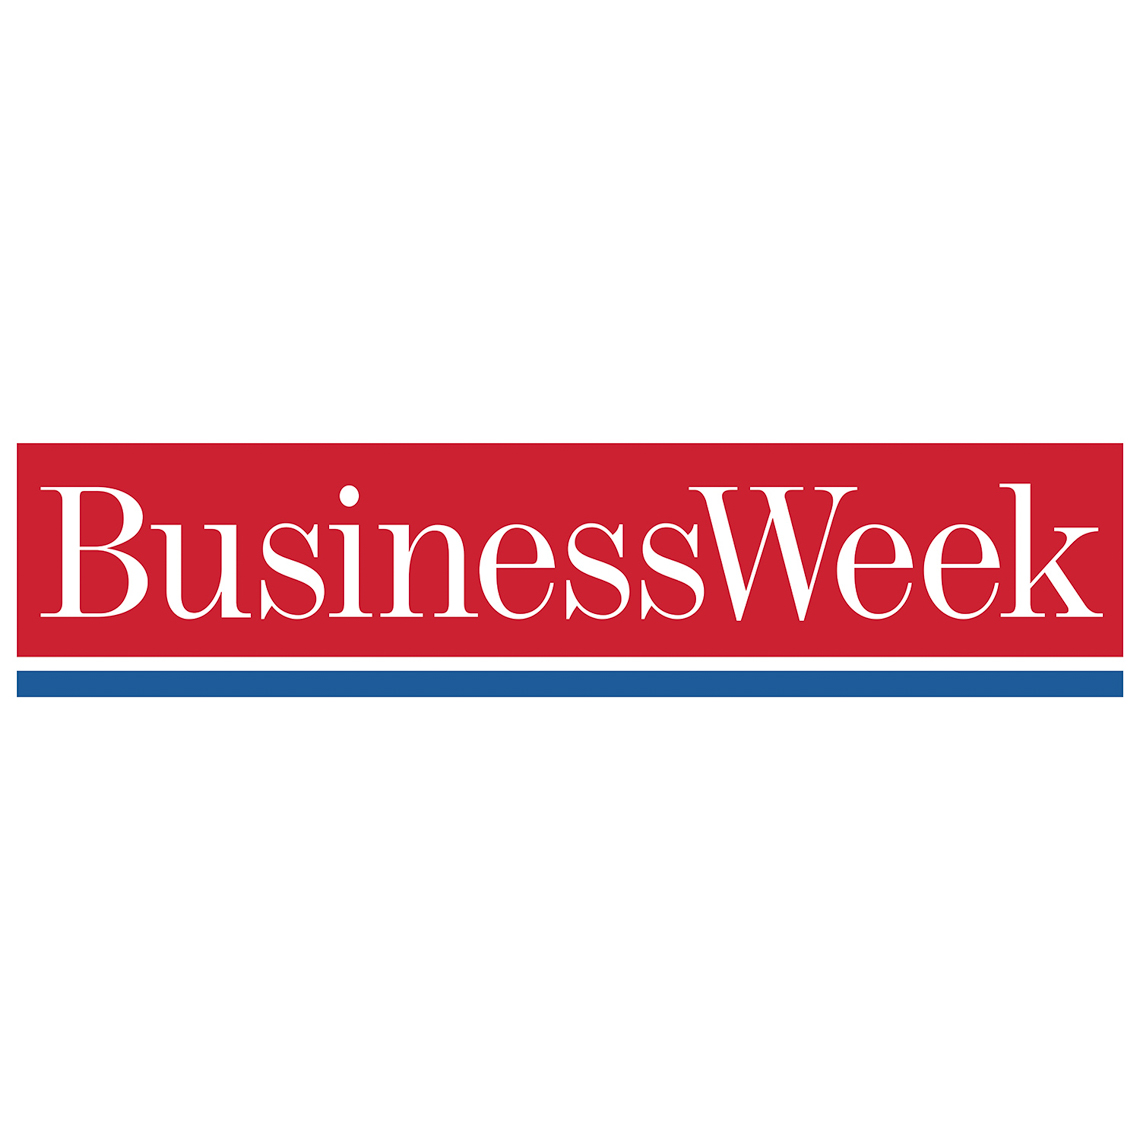 034-businessweek-1